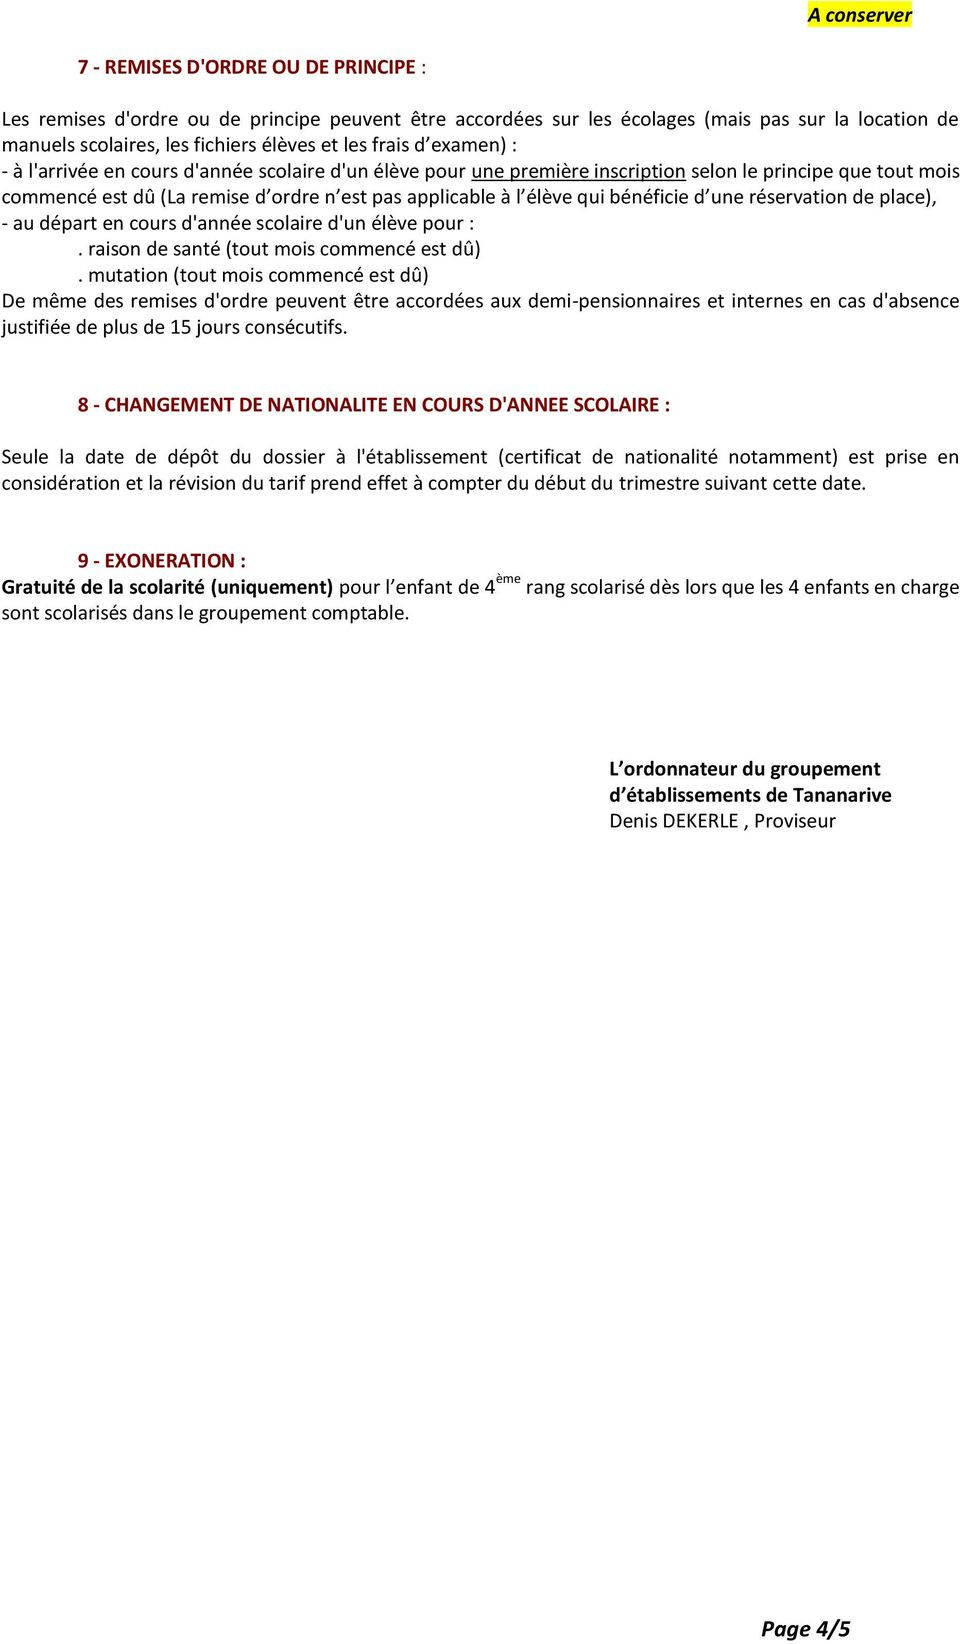 procedure de recouvrement des creances pdf